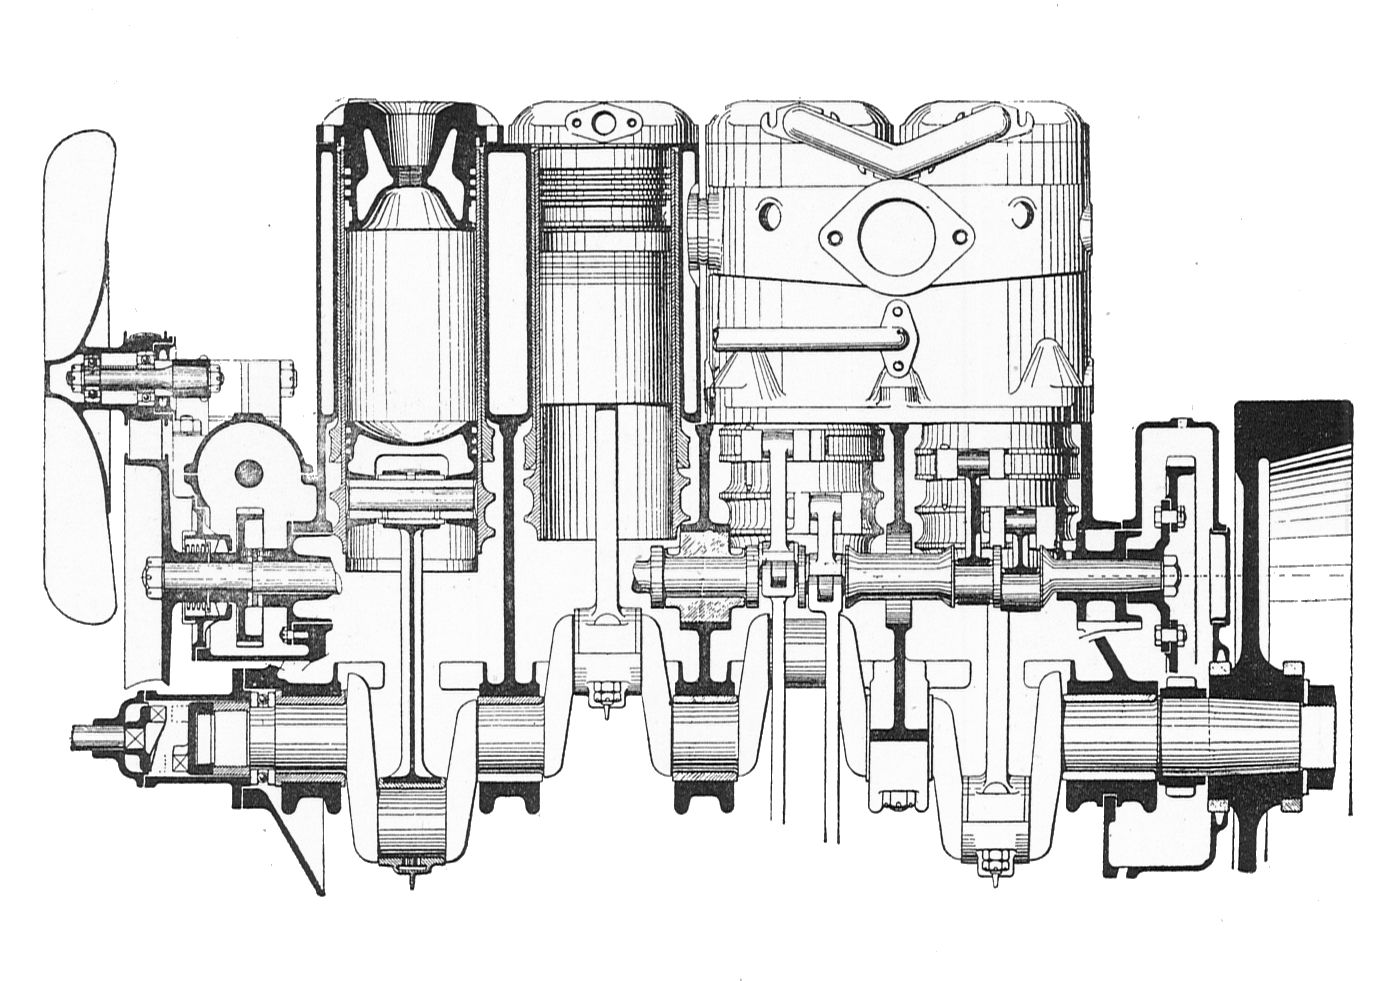 File:Knight-Daimler engine, side section (Rankin Kennedy